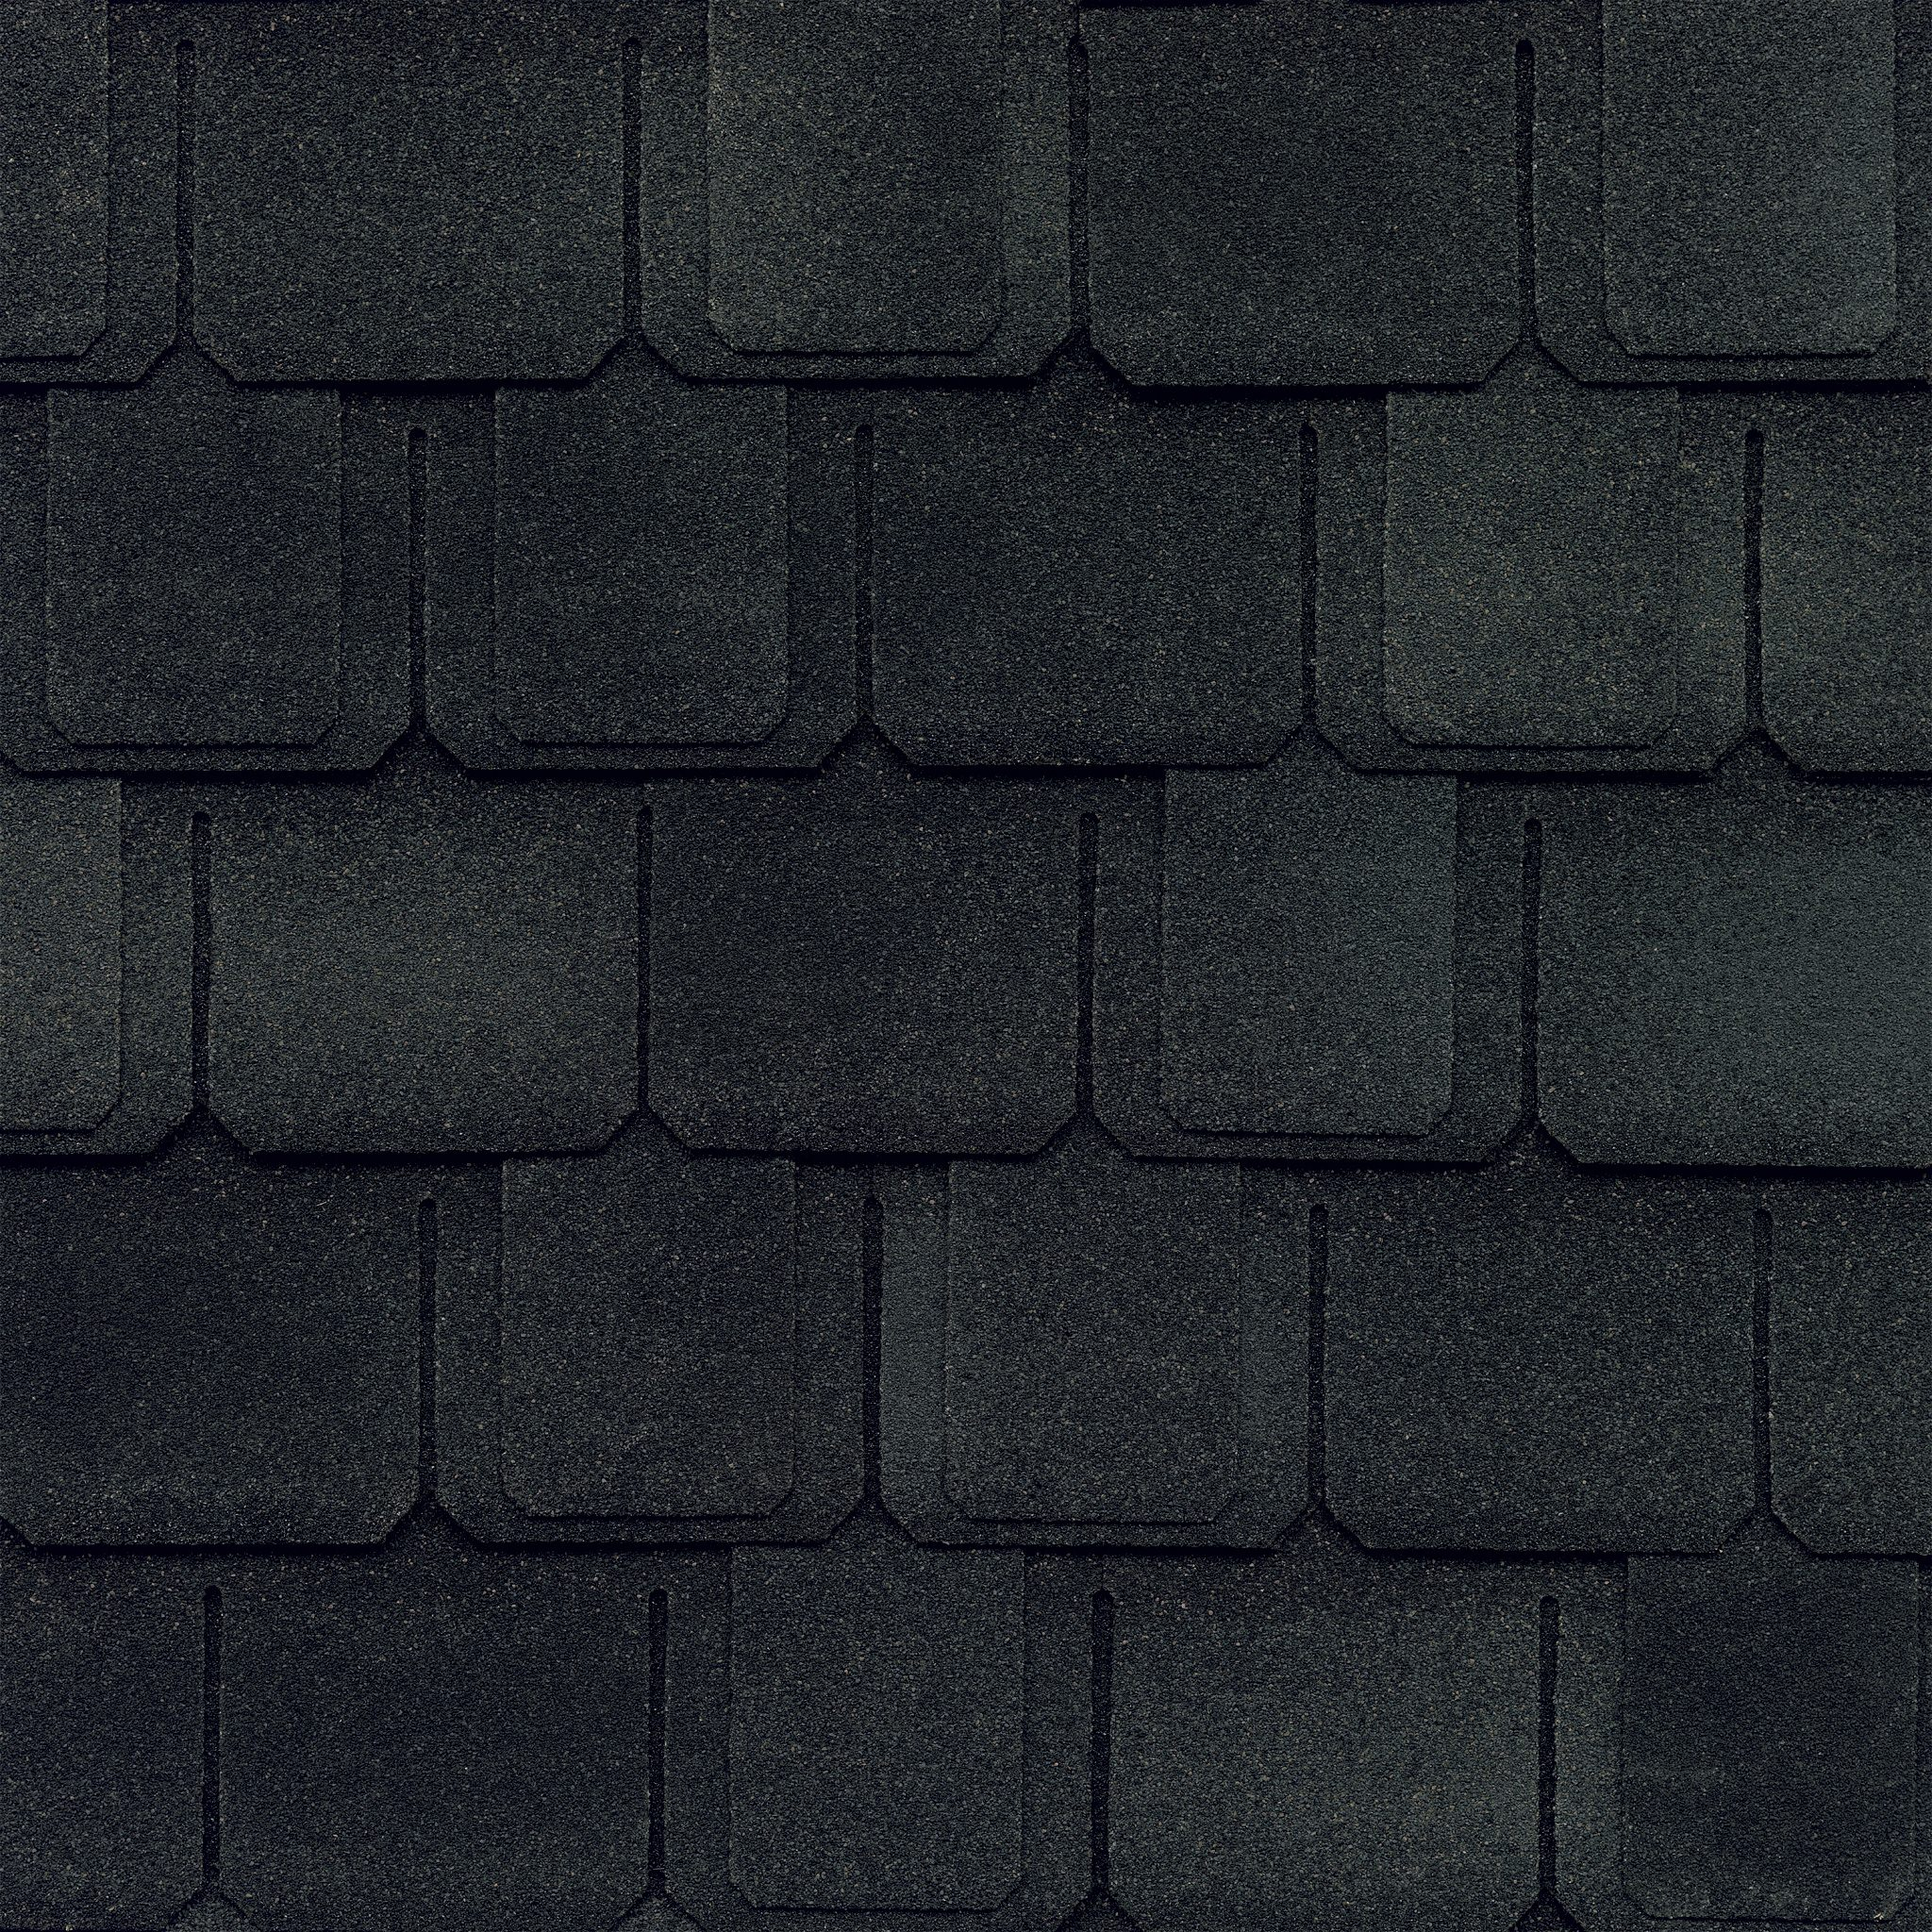 Close-up photo of GAF's Camelot II Charcoal shingle swatch